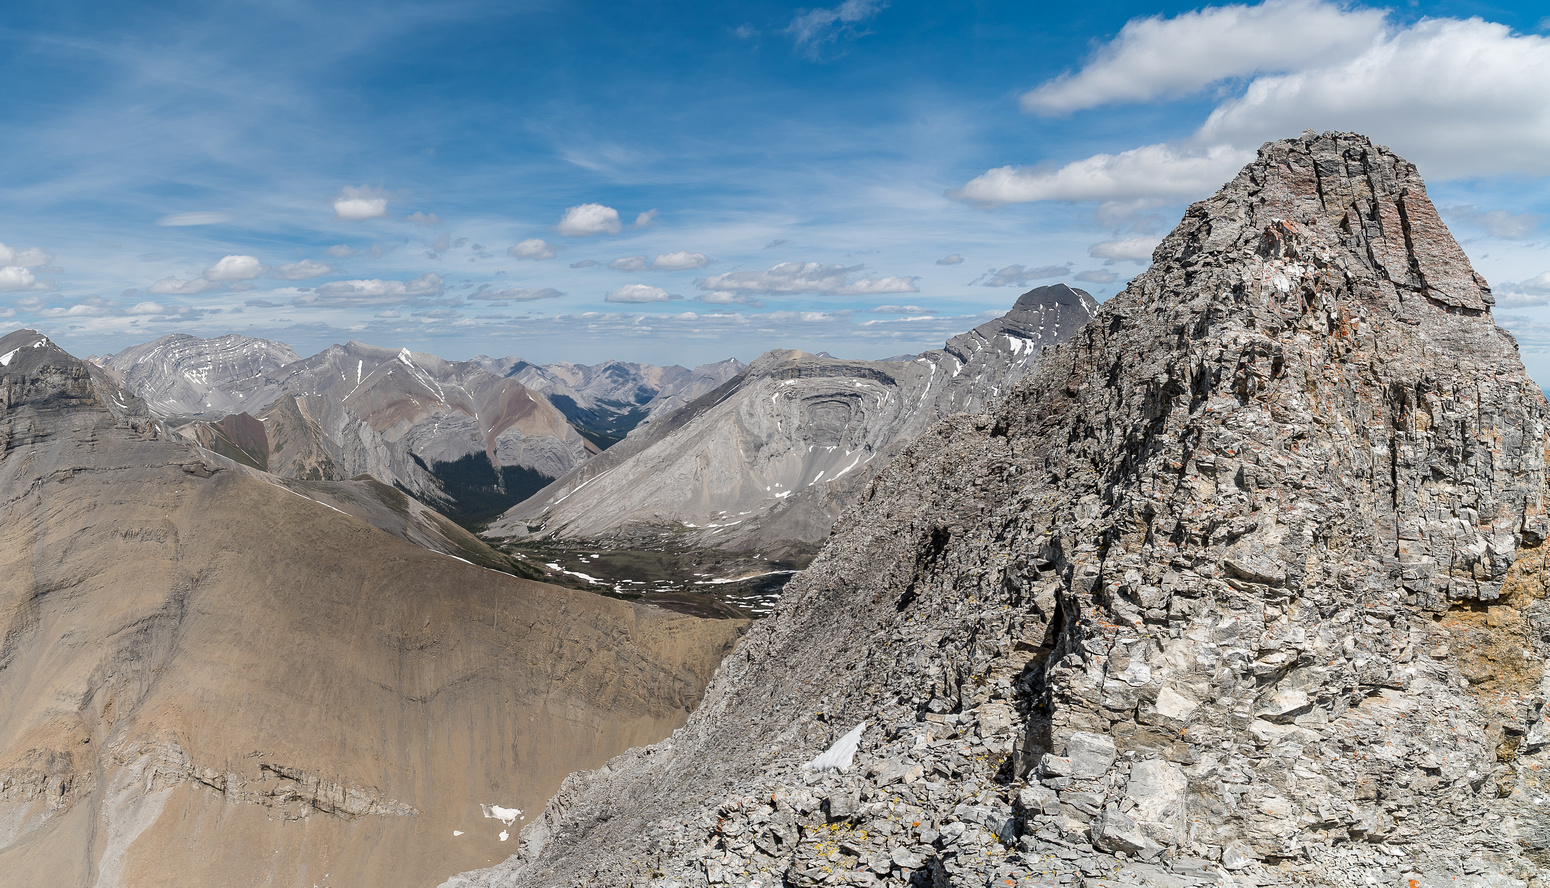 Some of the terrain on the short, difficult traverse between summits on the NE summit block of Astley